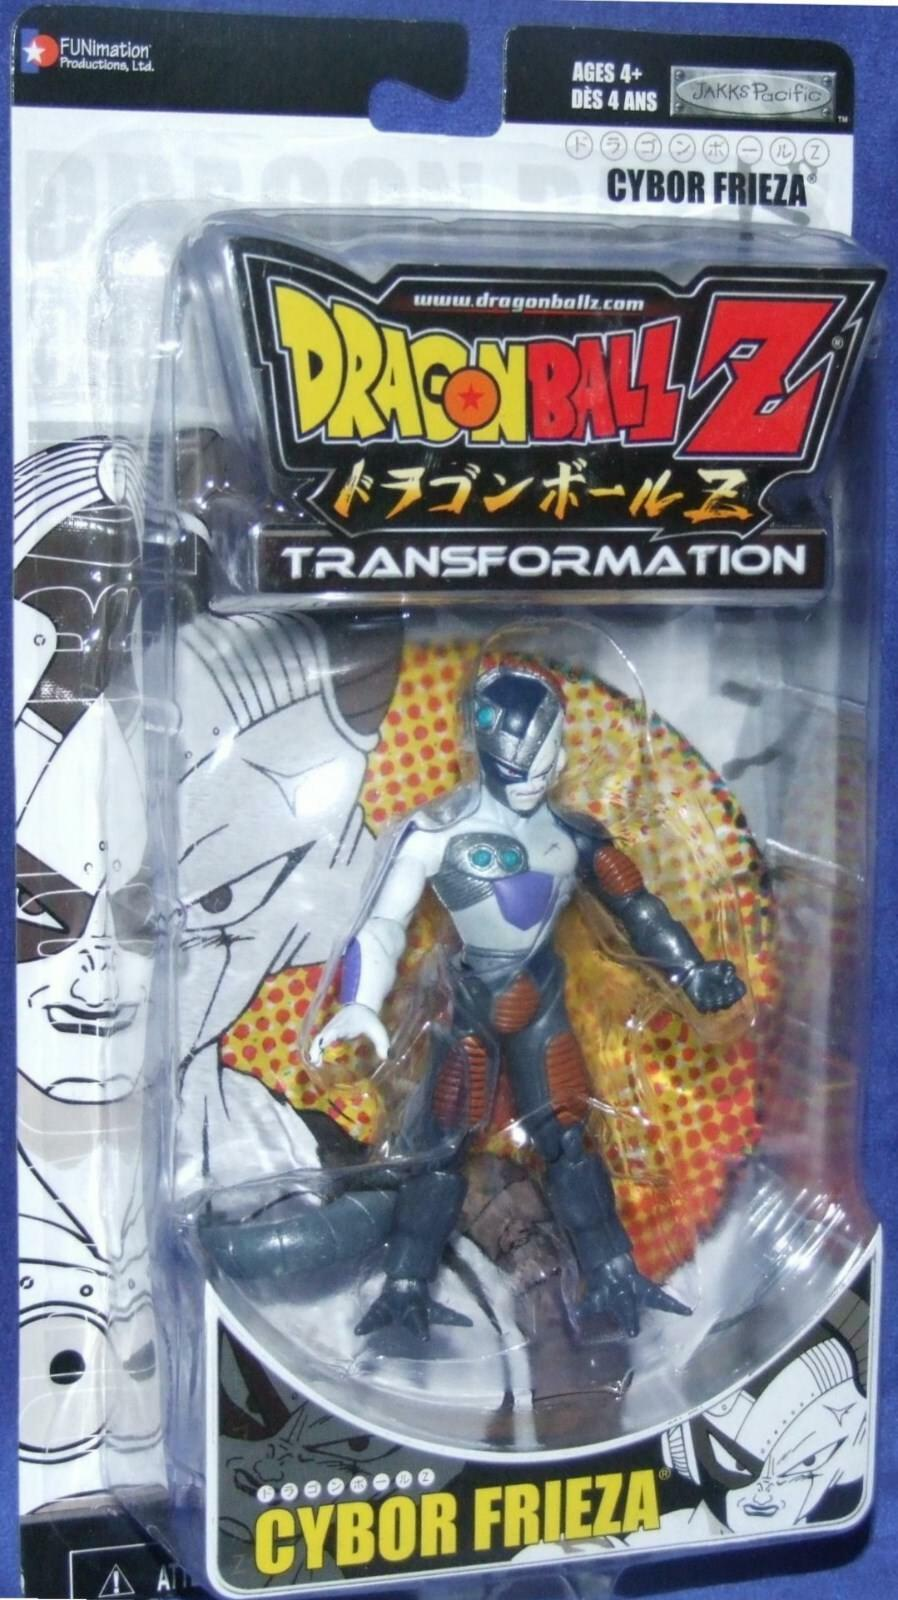 drakekboll Z Transformation CYBOR FRIEZA Factory förseglad New Jakks Pacific 2006